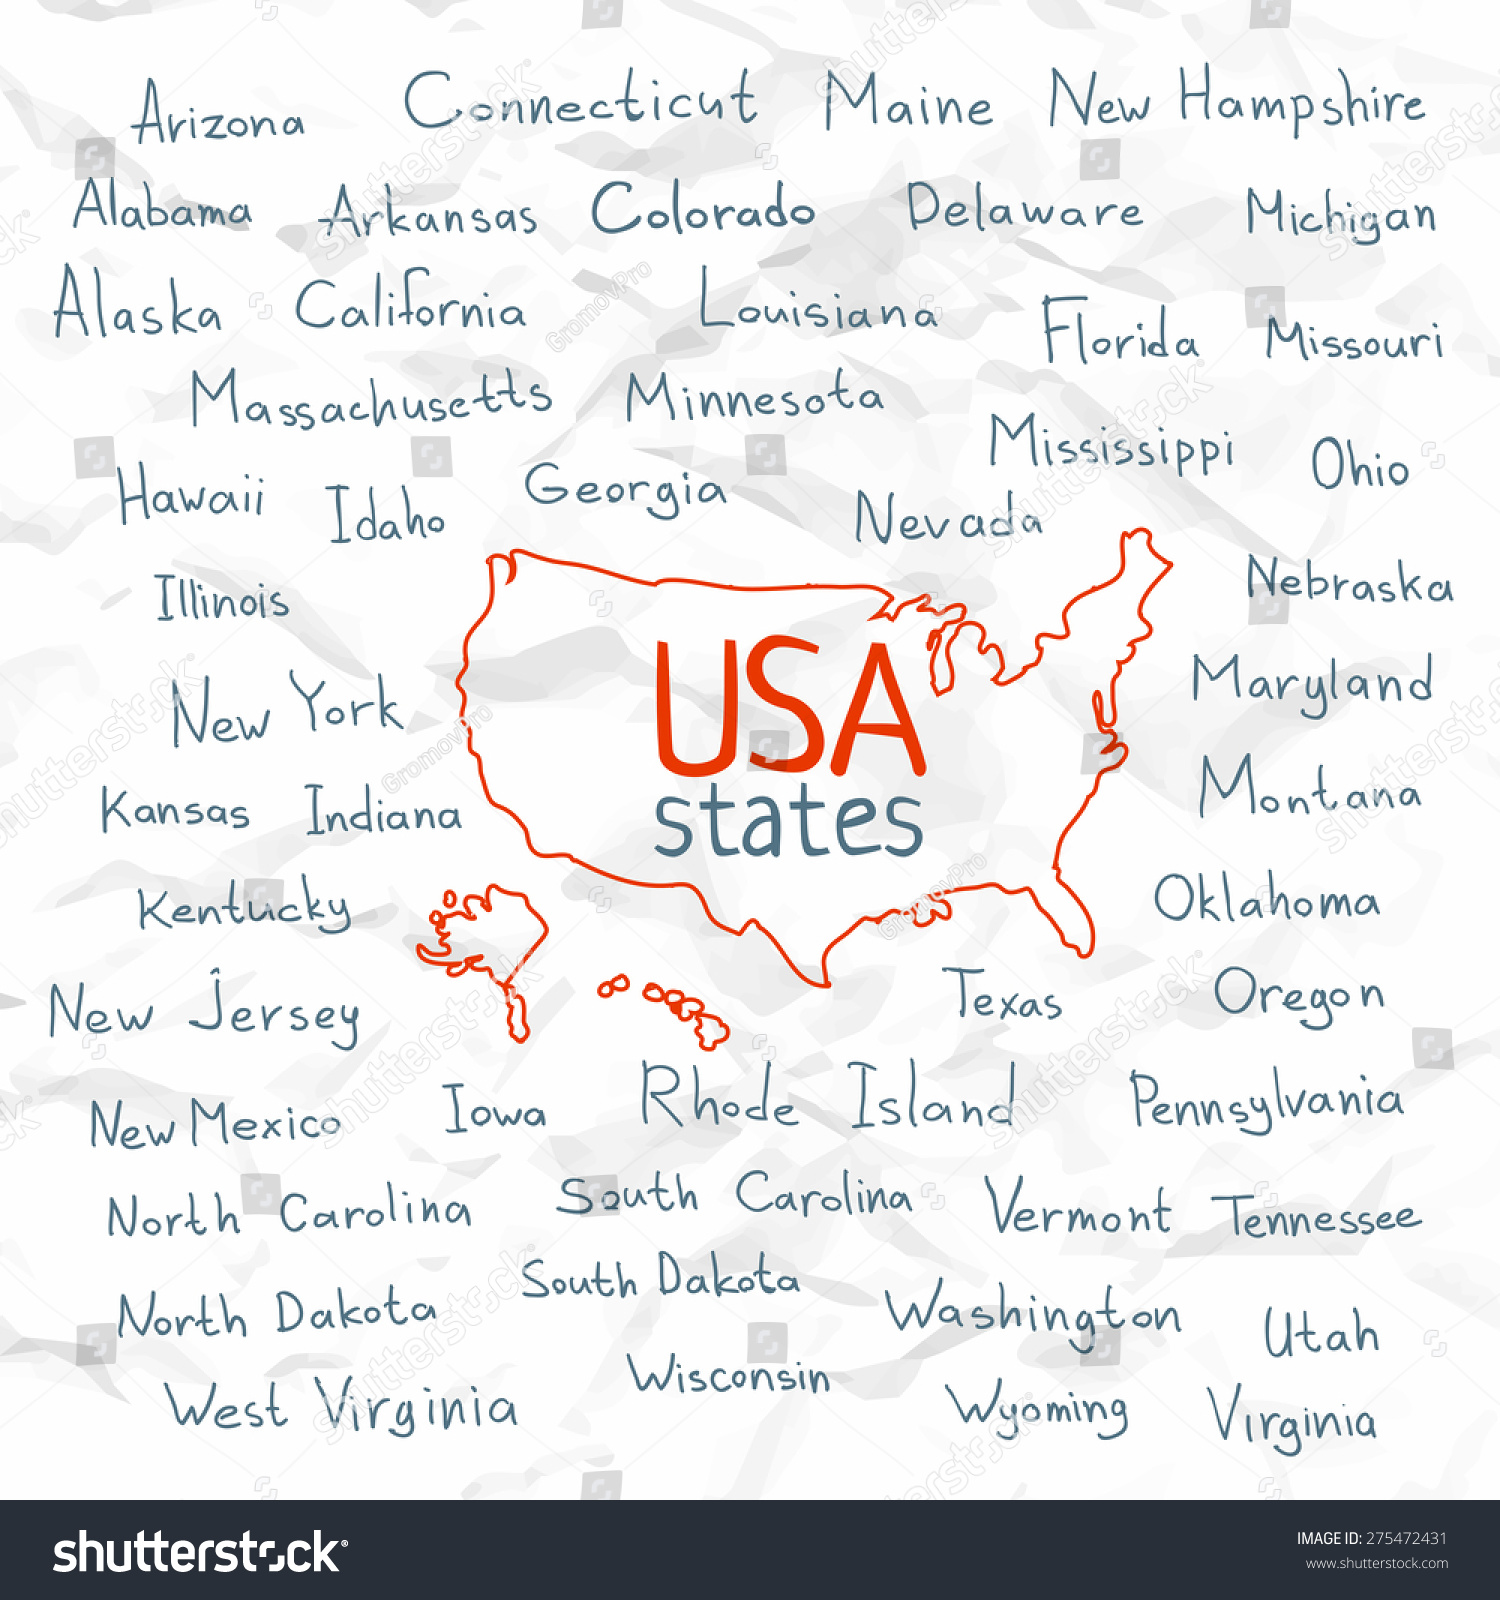 Names States Free Image - Us map with city and state names